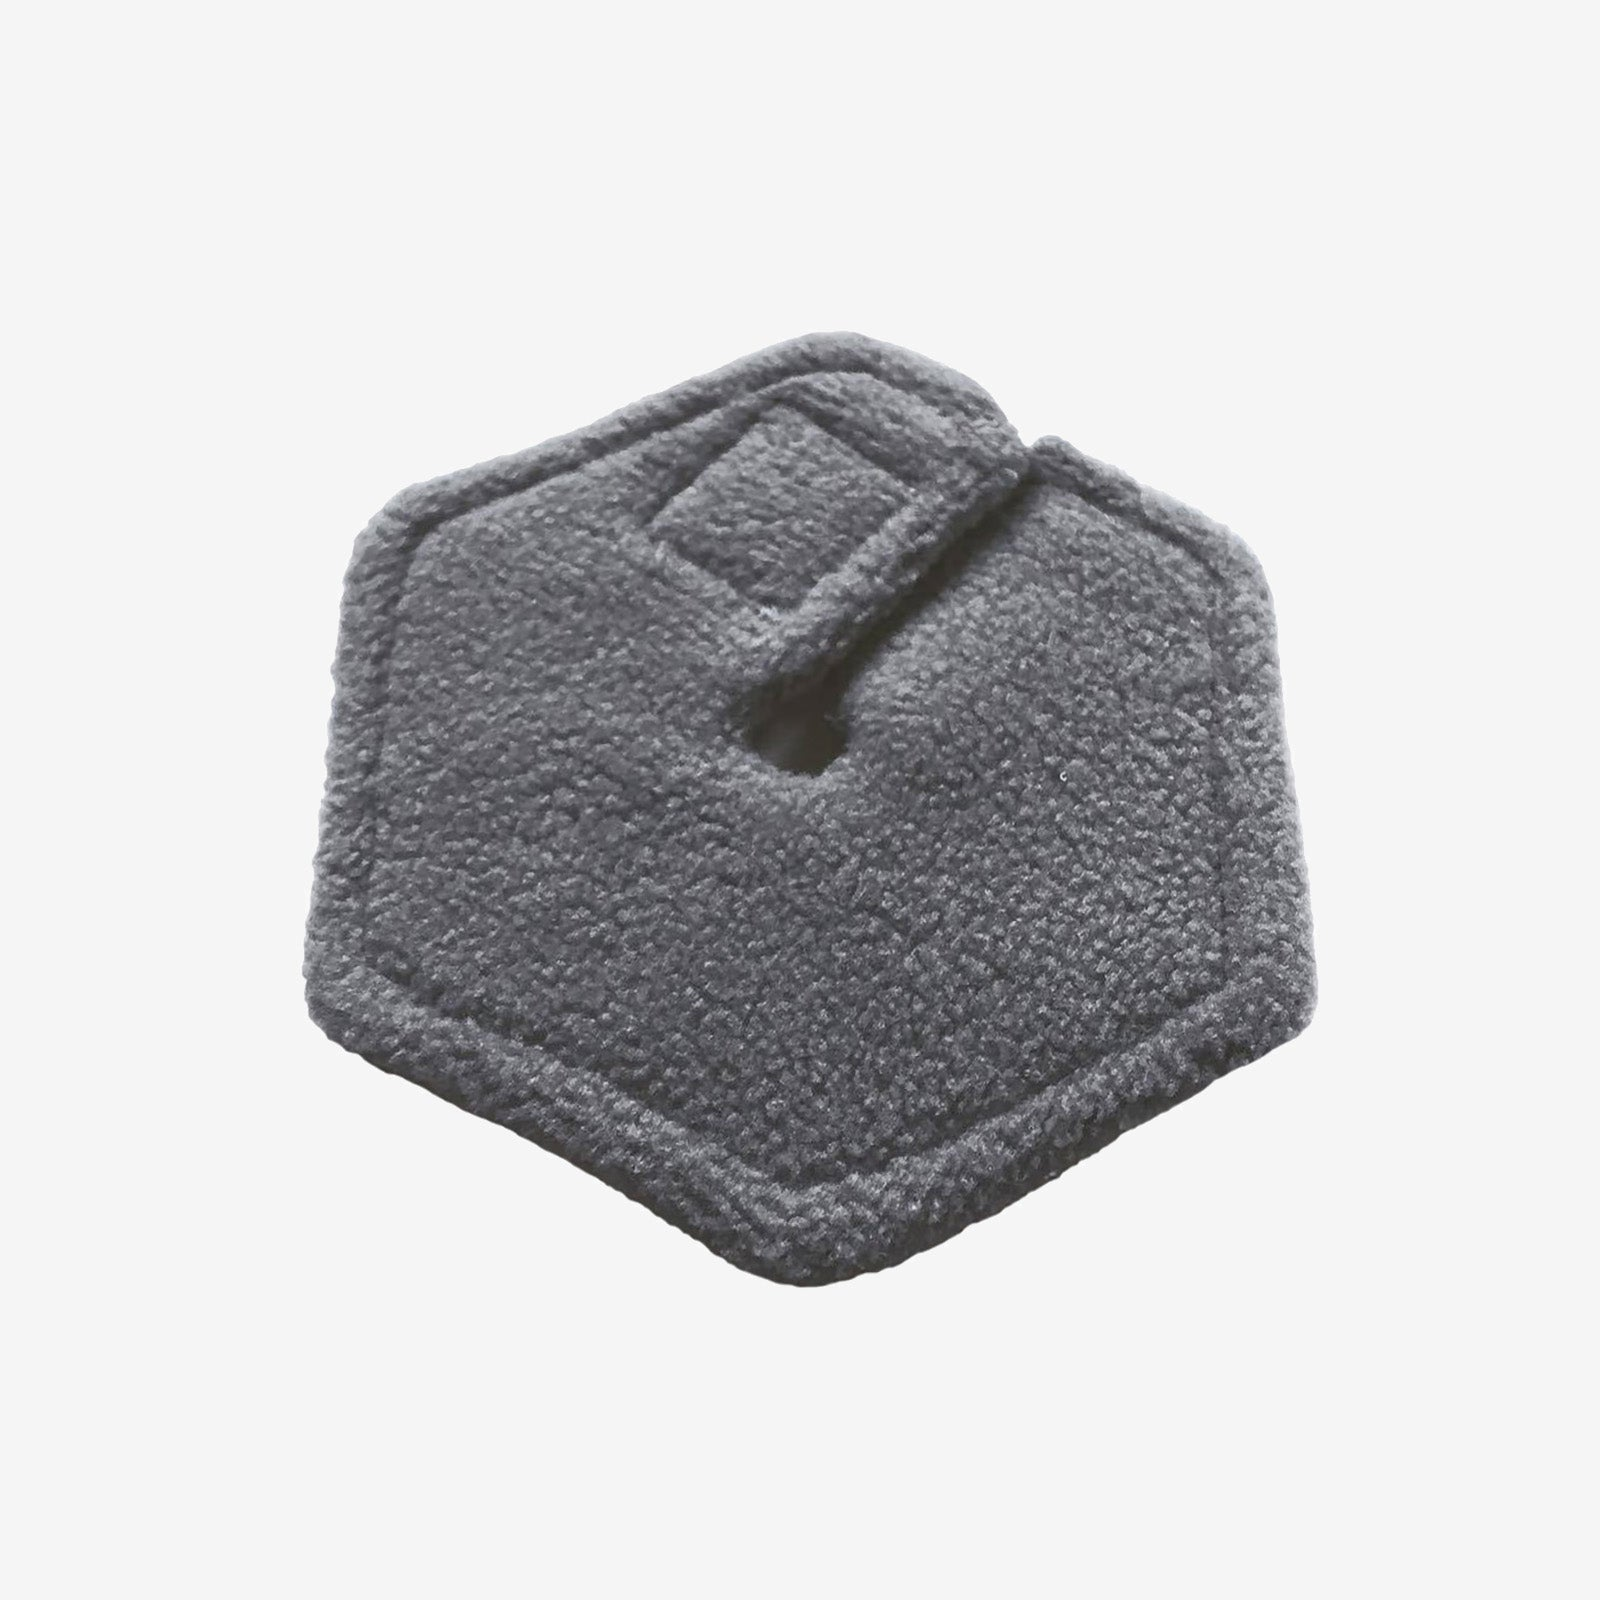 Soft, moisture absorbing backside of feeding tube pad